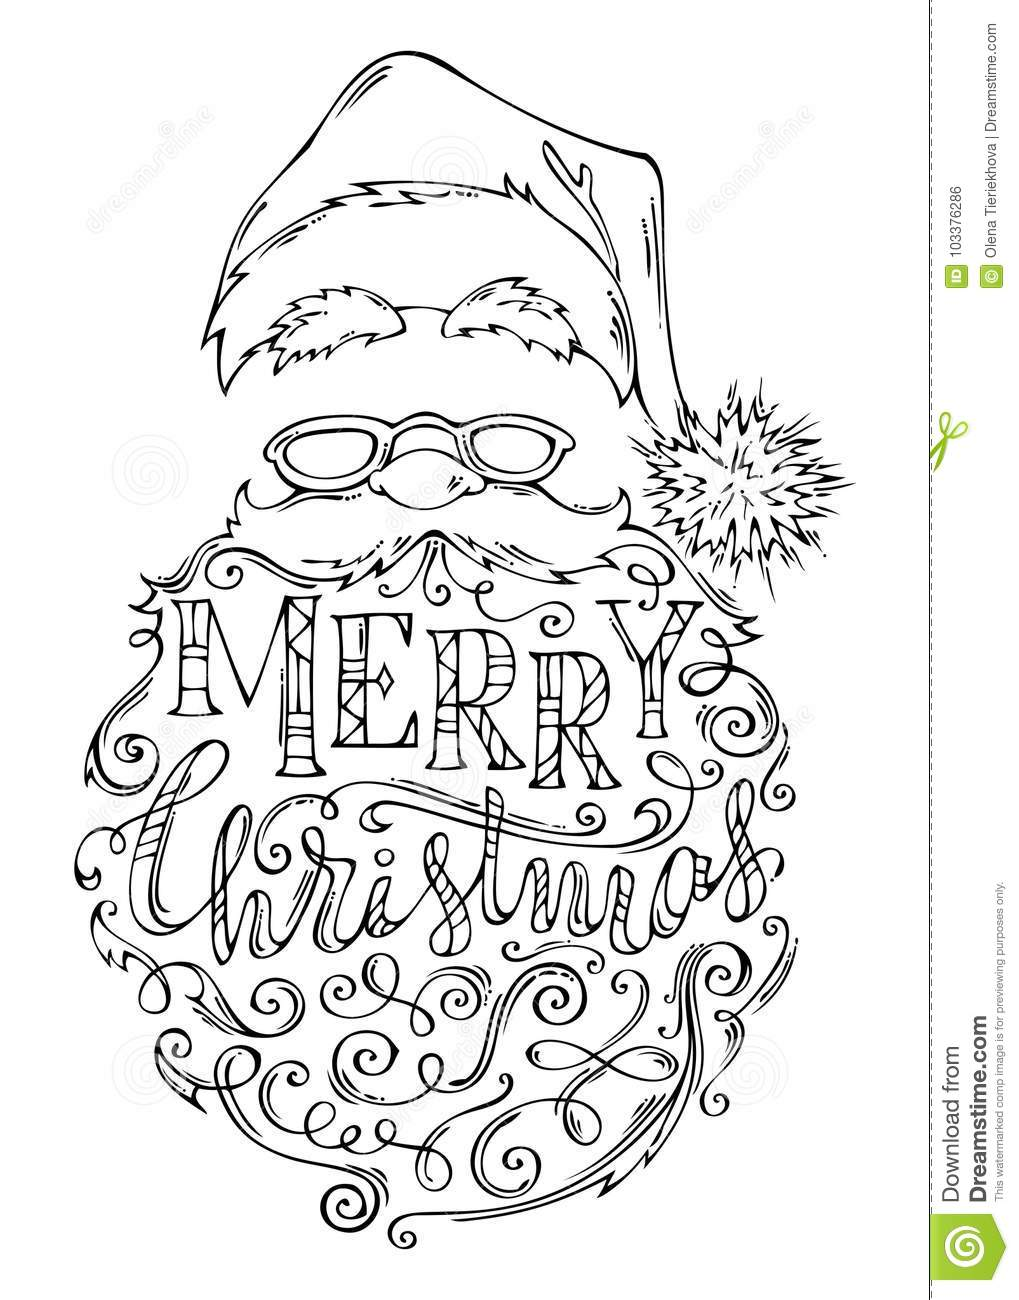 Doodles Merry Christmas Lettering. Stock Vector - Illustration of ...